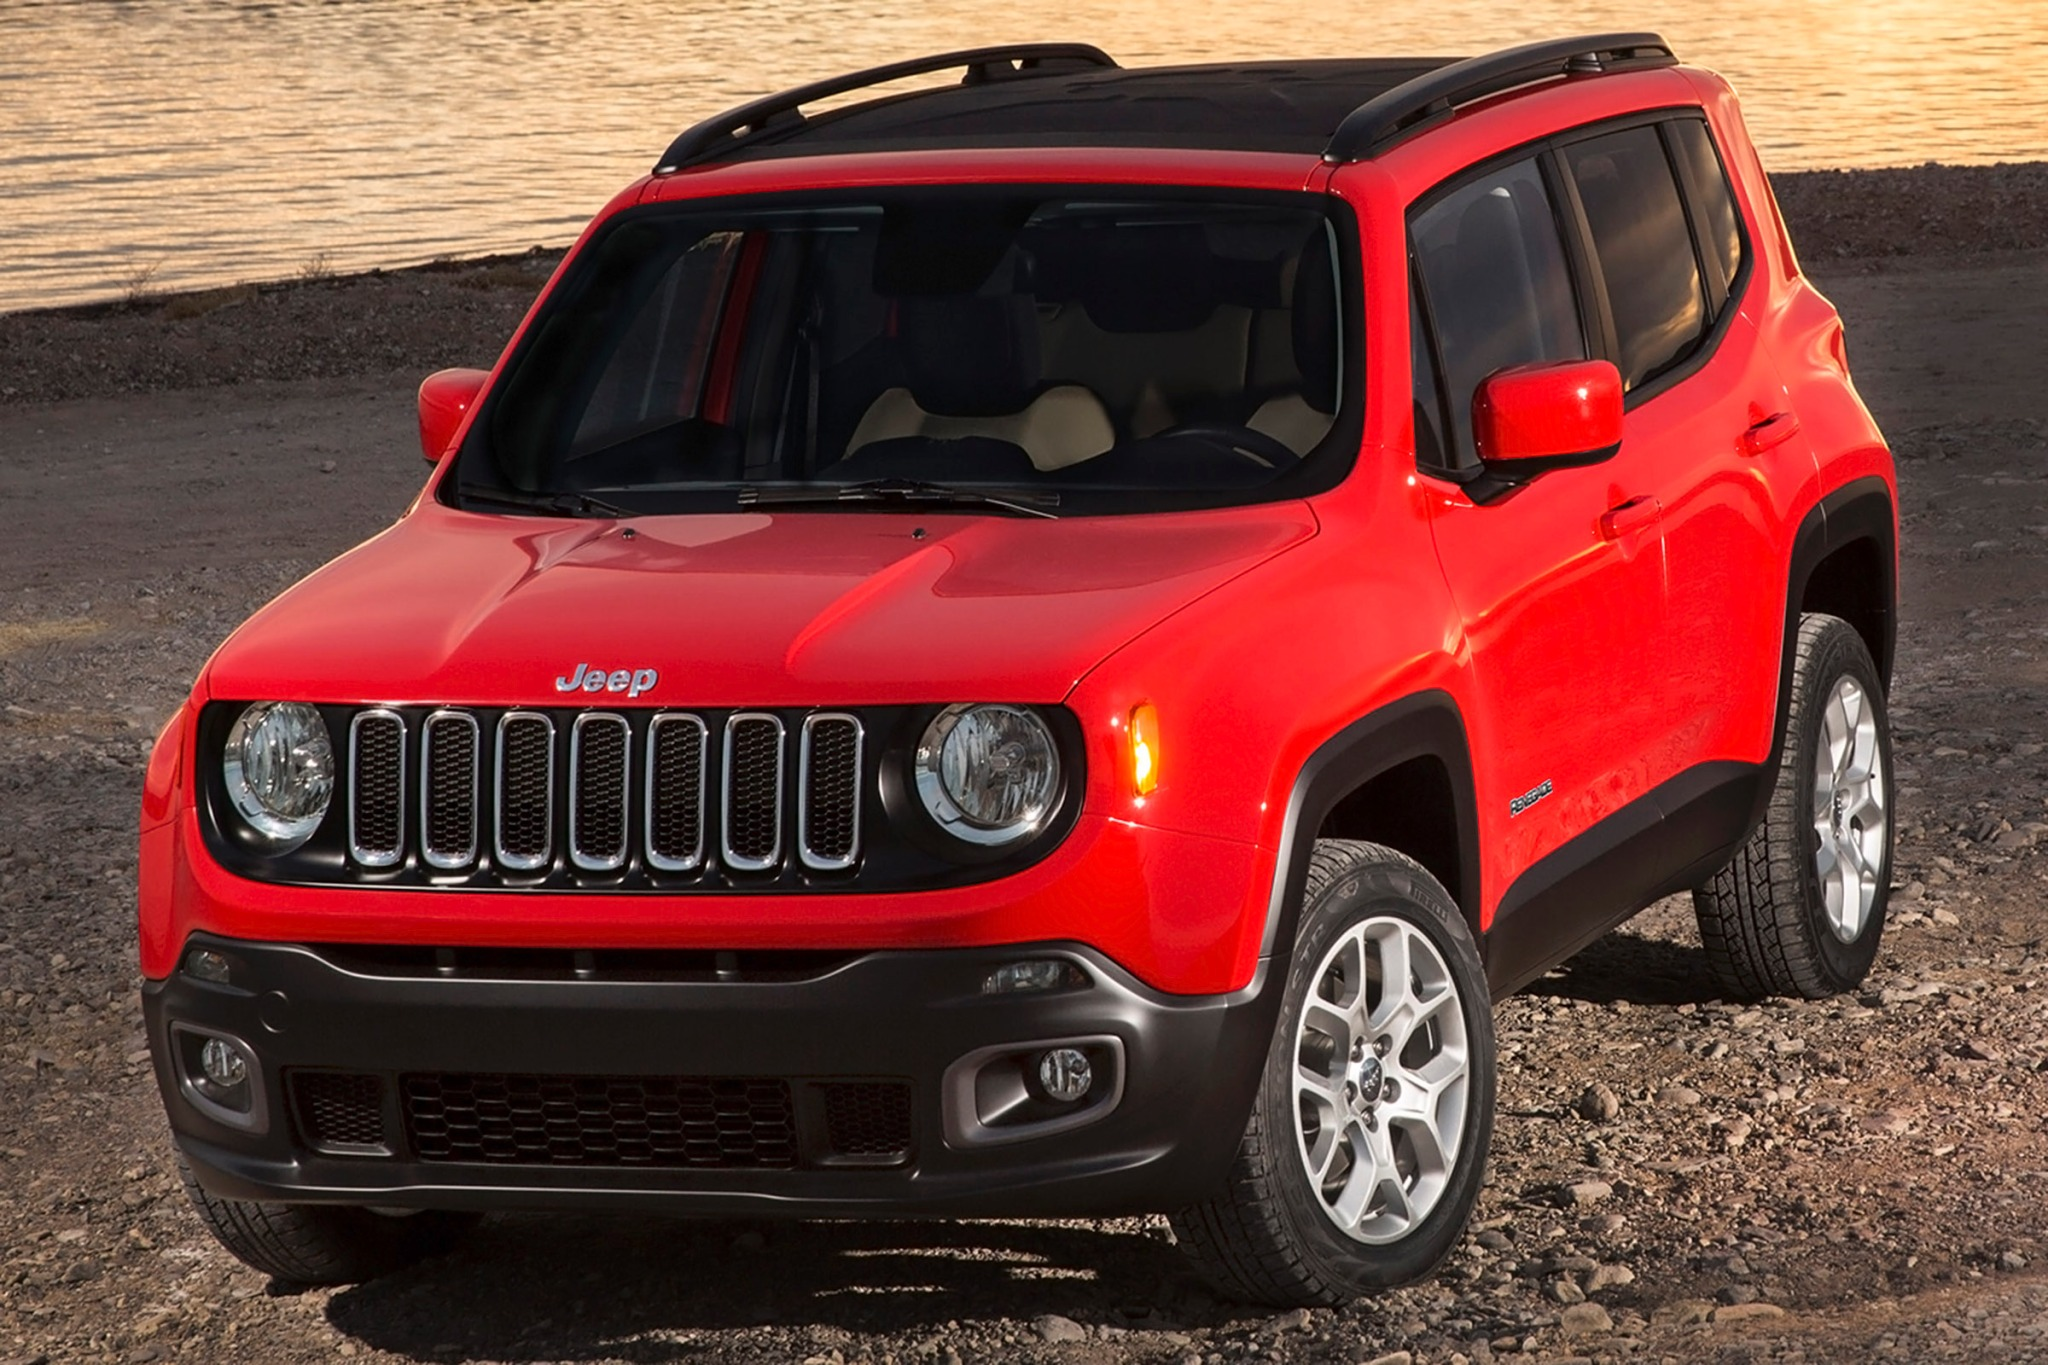 latitude colorado wiki file right jeep front red renegade